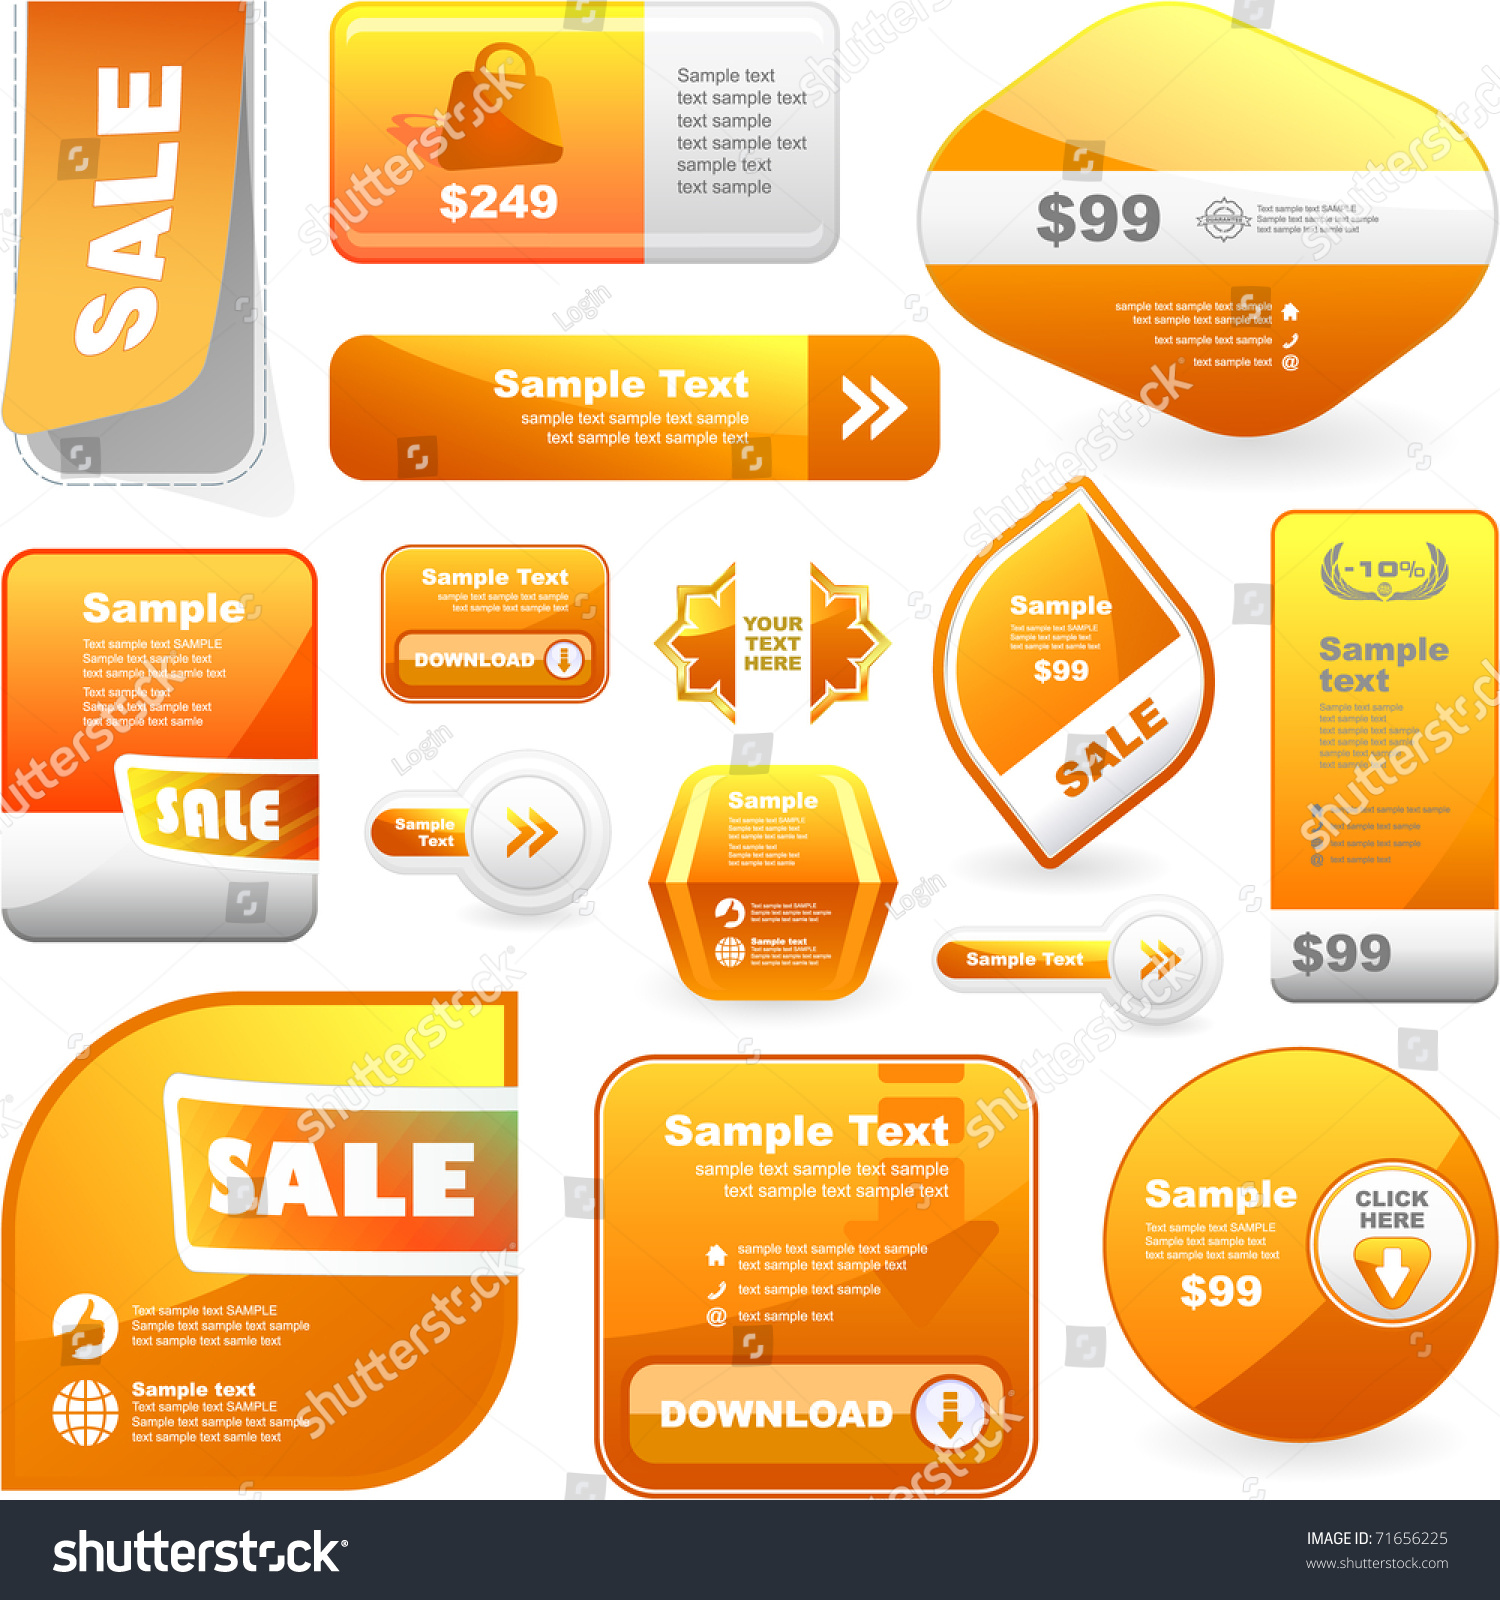 big collection elements sticker coupon stock vector  big collection of elements sticker coupon brochure template offer banner